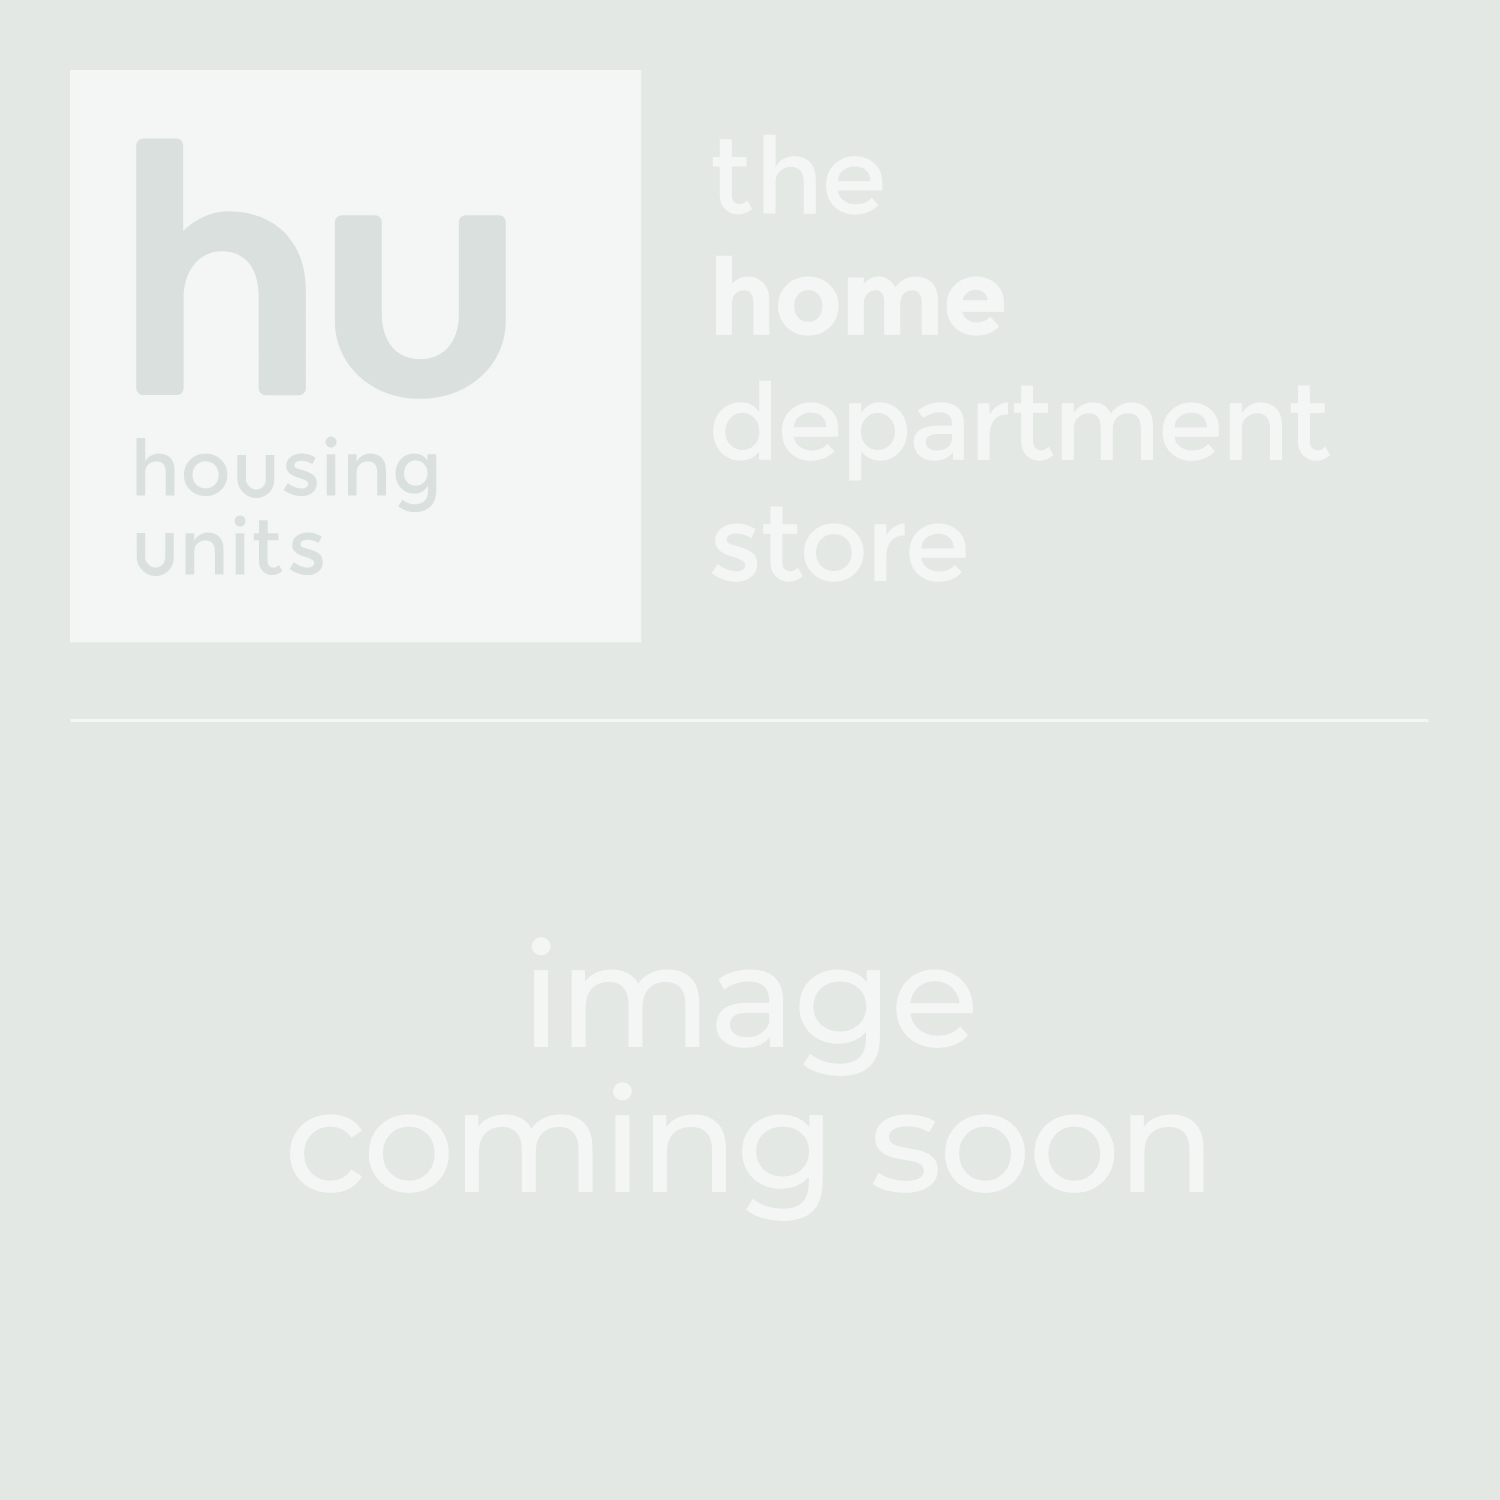 The award winning, Silver Cross Simplicity is one of the most advanced infant safety products available anywhere in the world.